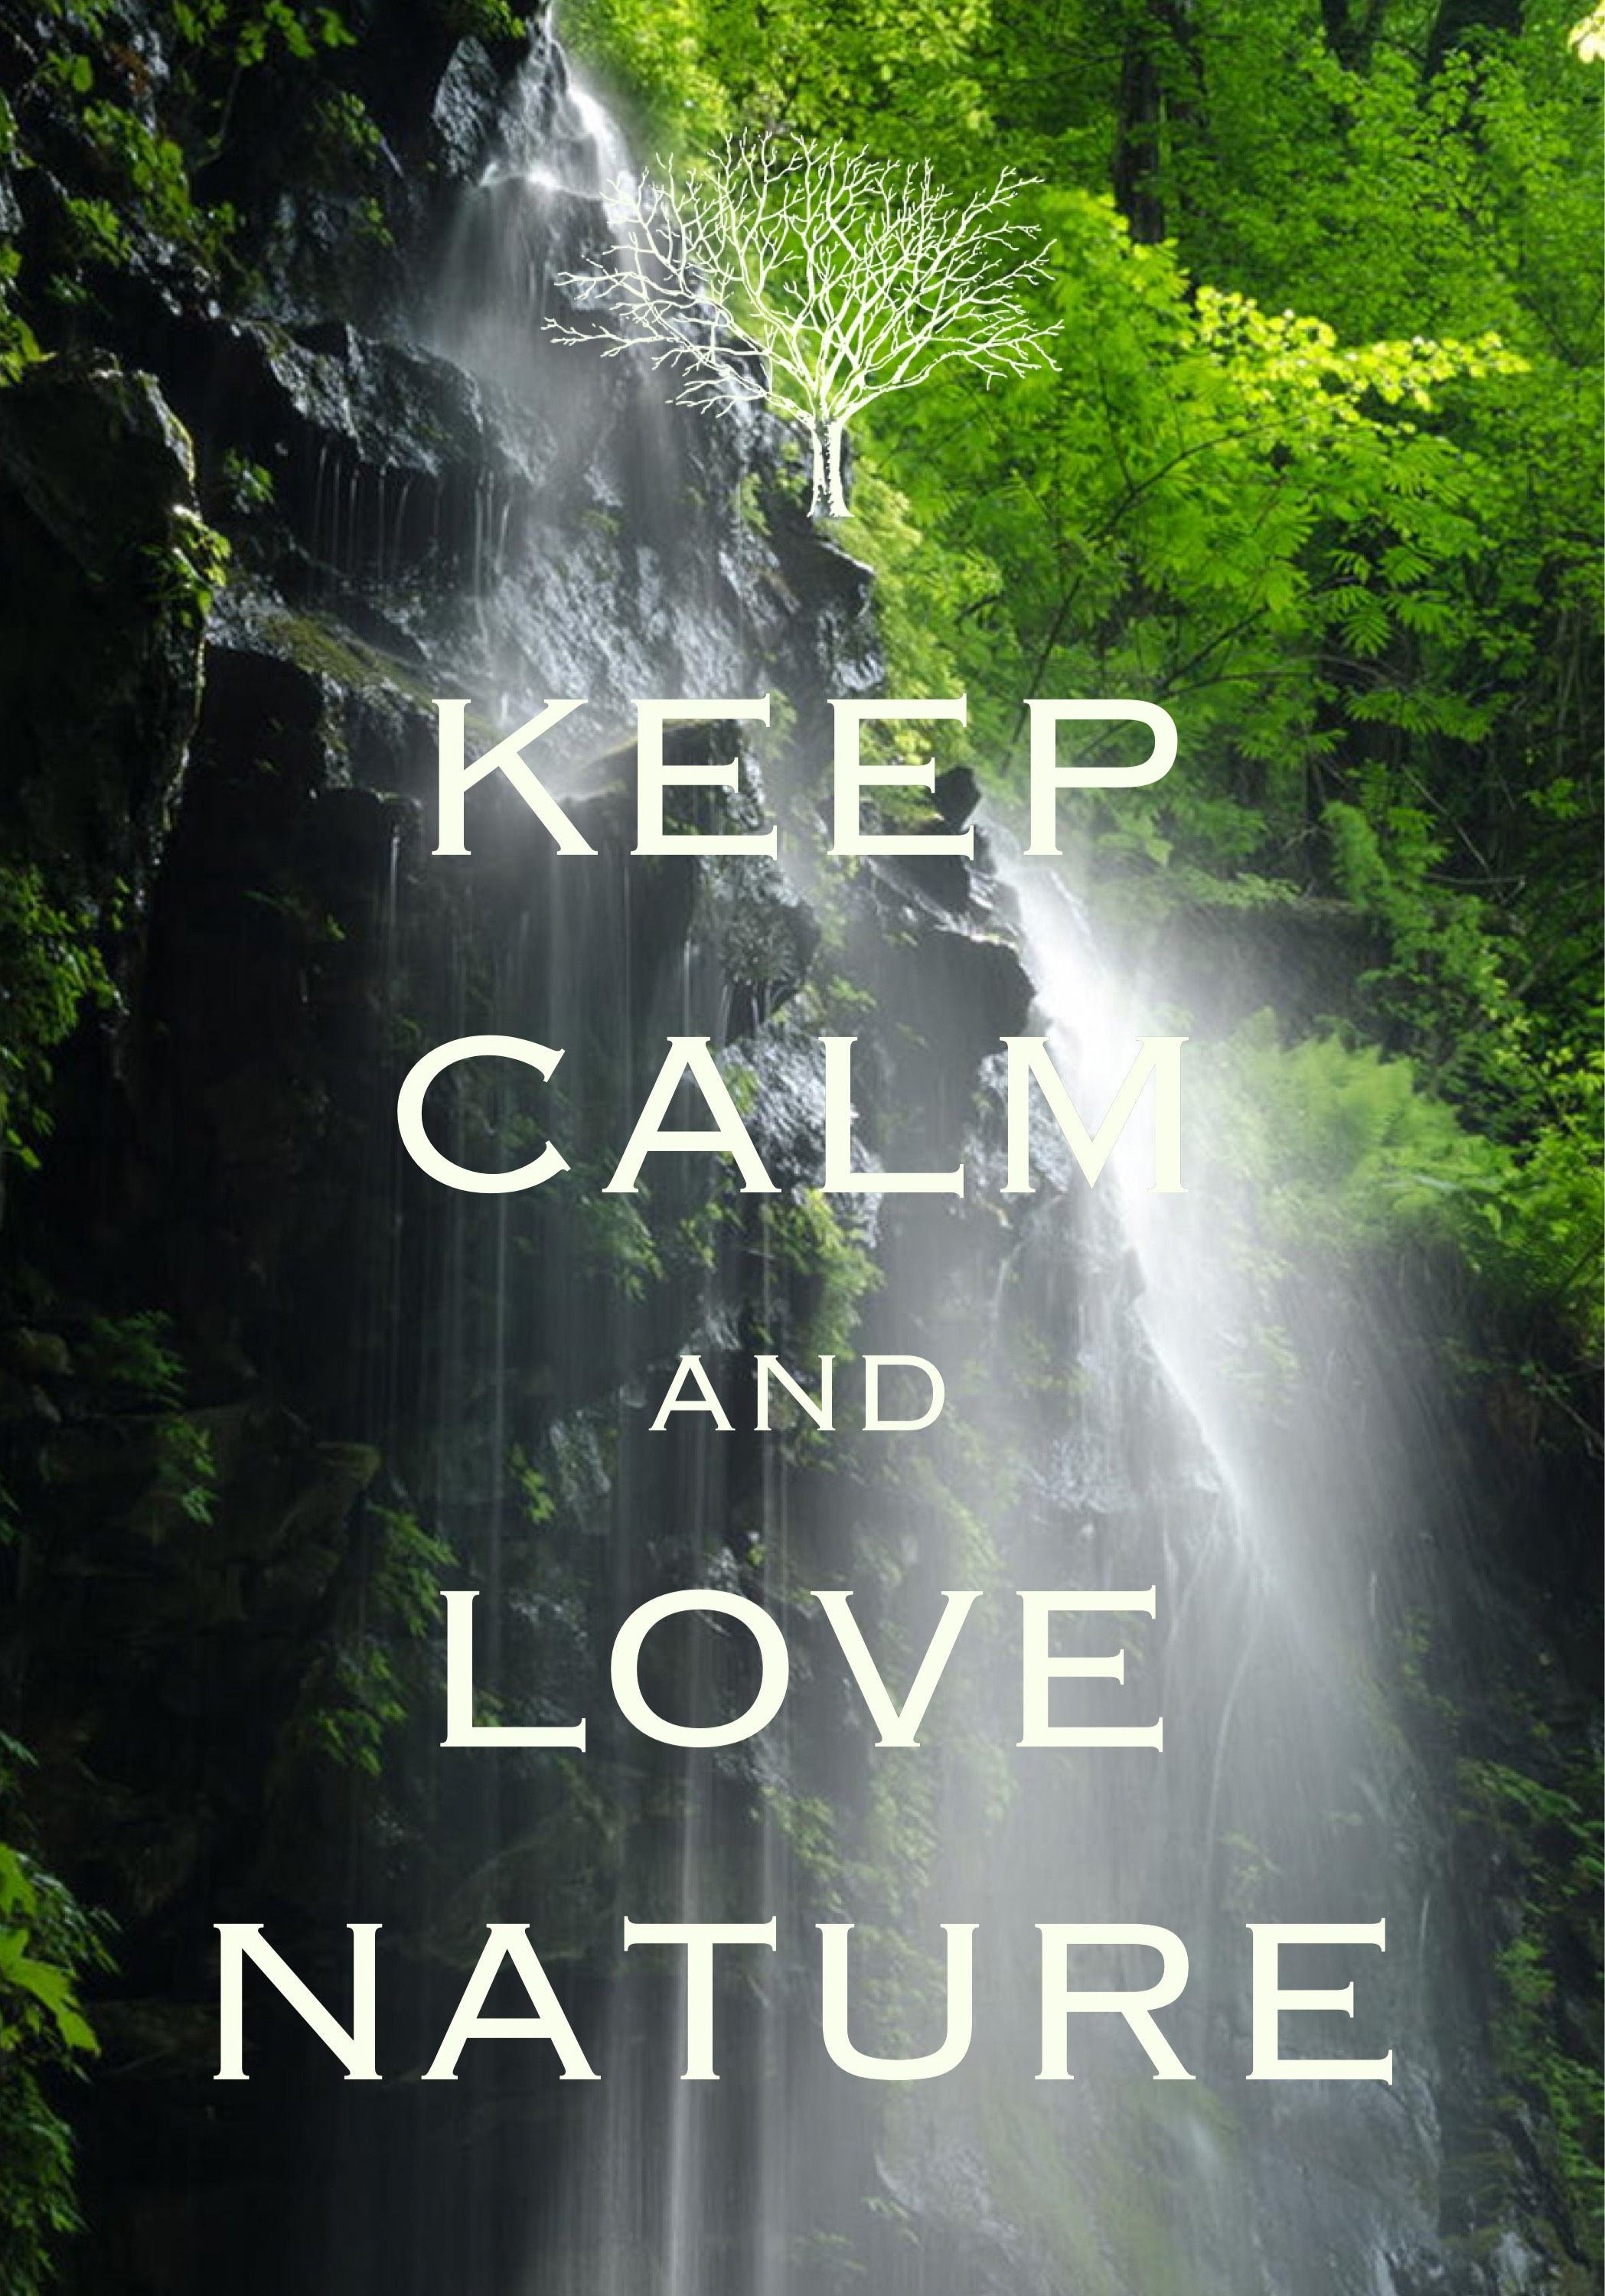 Keep Calm And Love Nature Created With Keep Calm And Carry On For Ios Keepcalm Waterfall Nature Keep Calm Pictures Keep Calm Keep Calm Signs